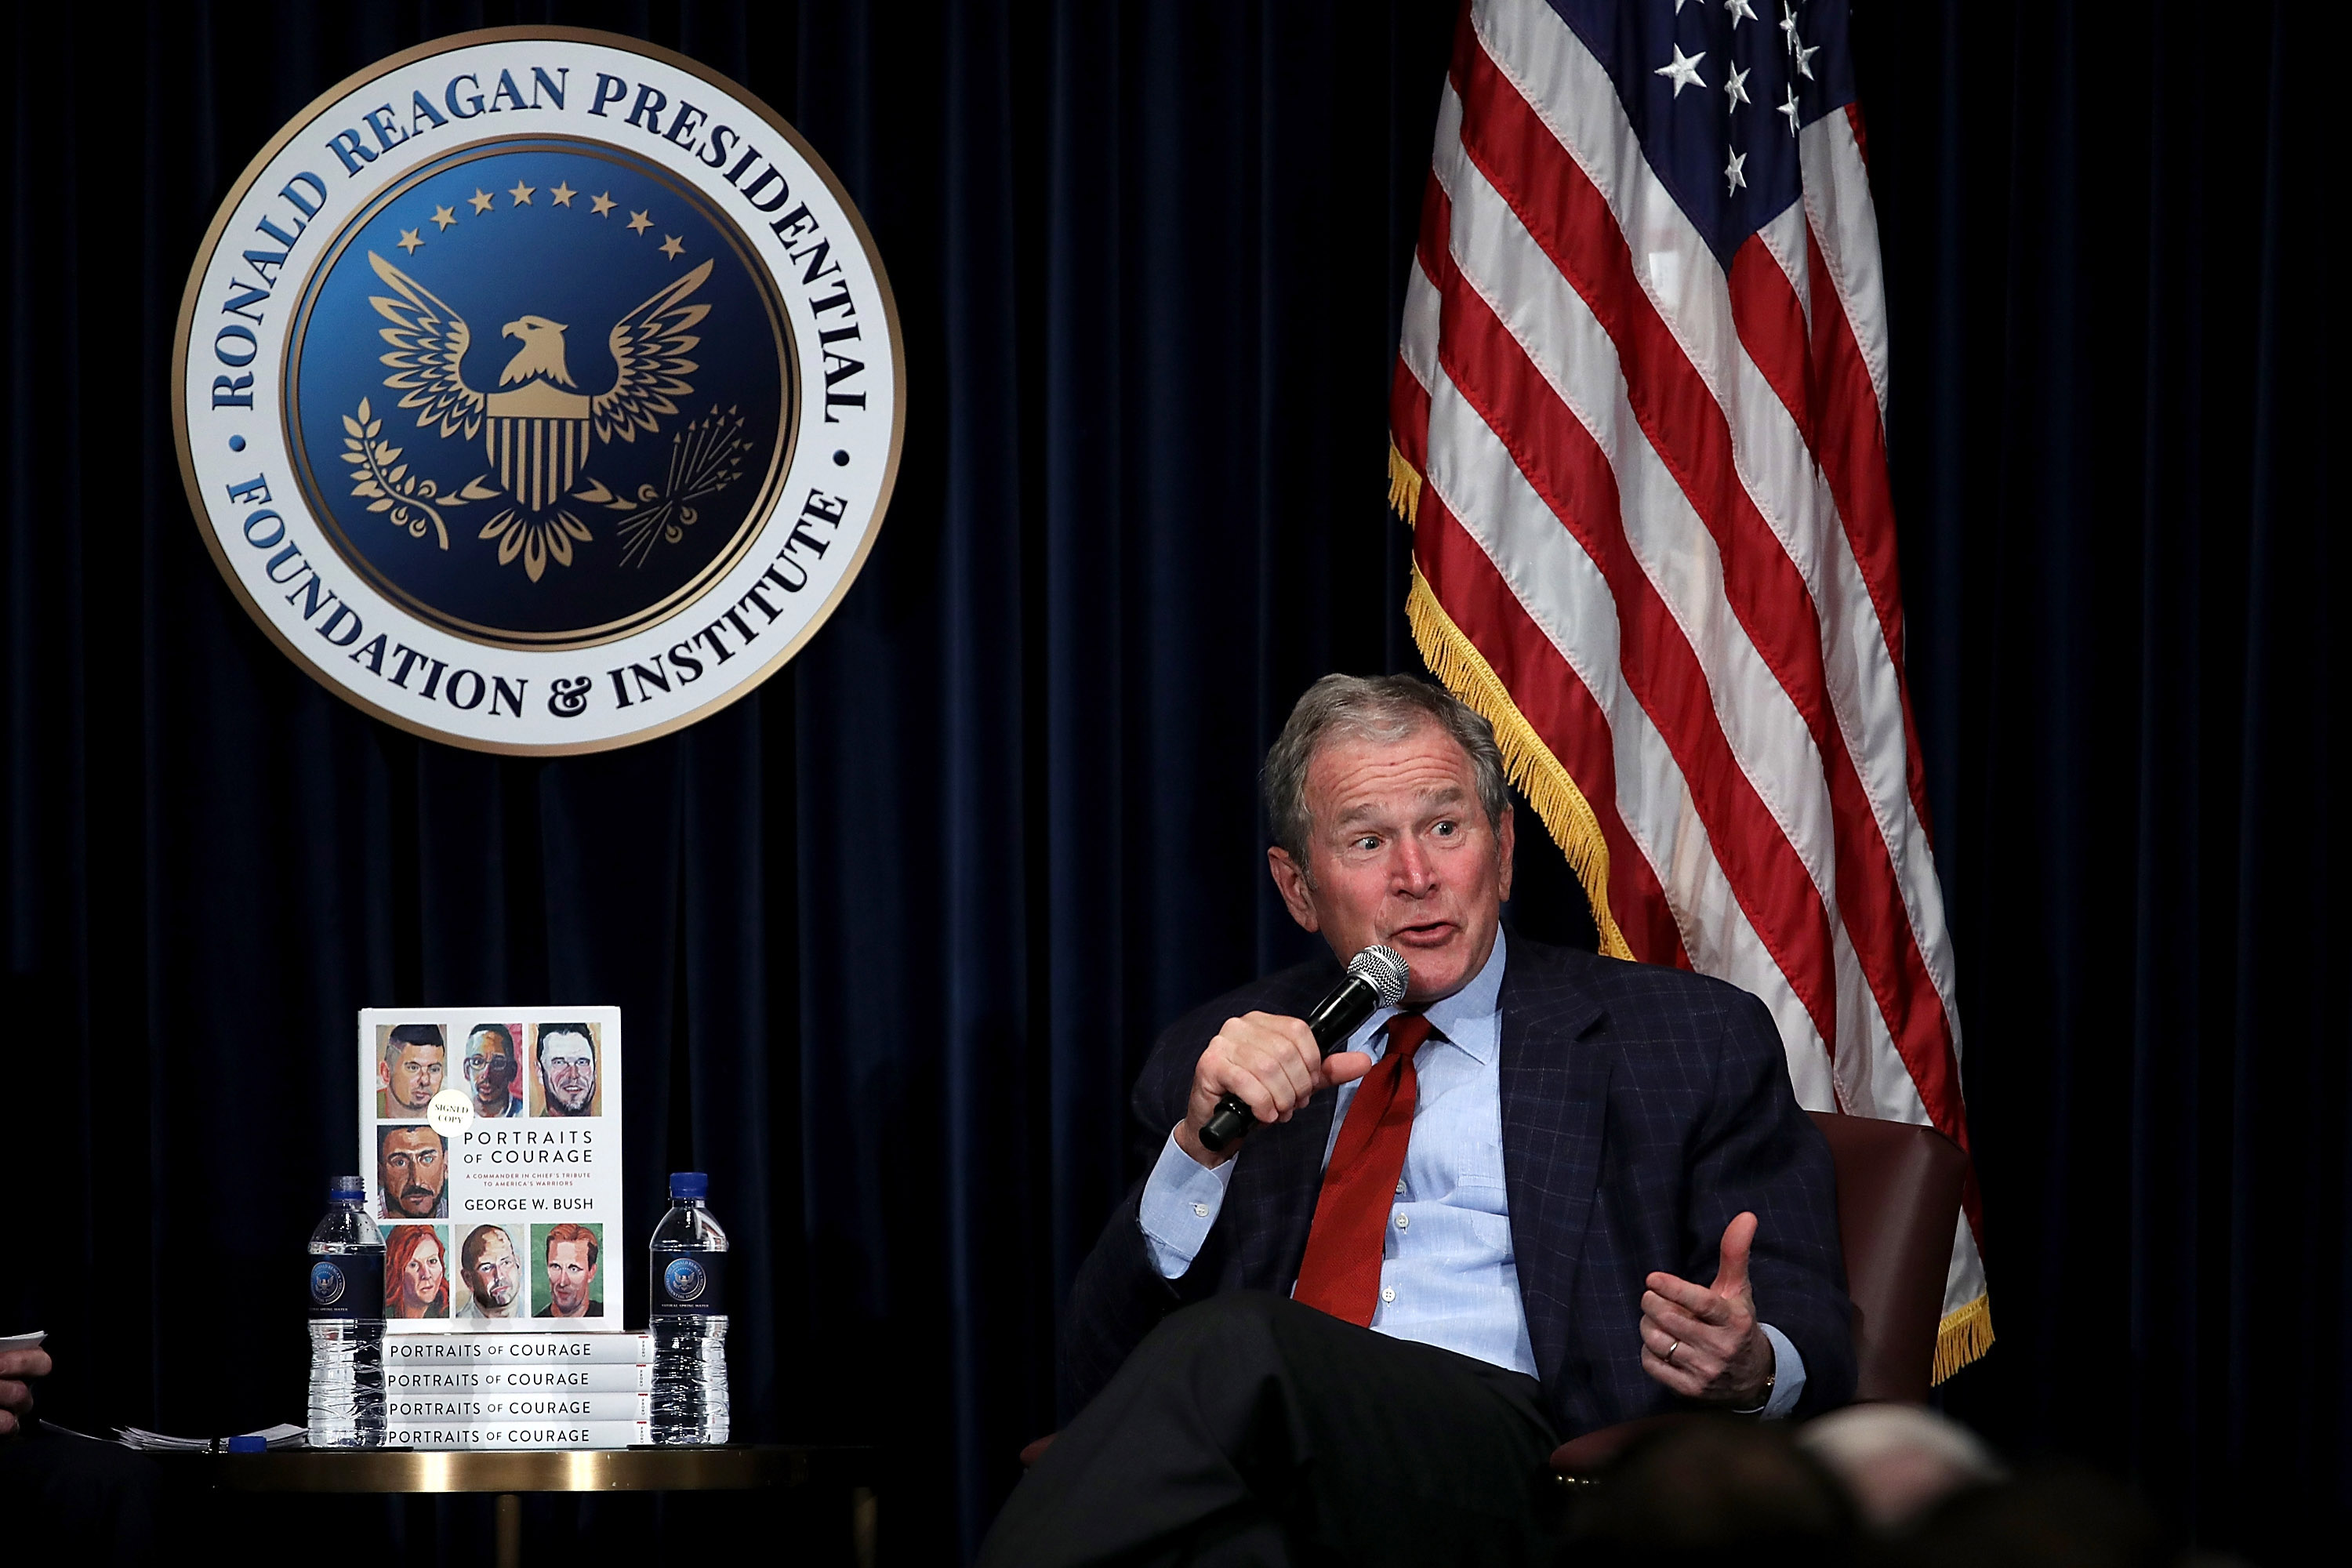 Former U.S. President George W. Bush speaks during a discussion about his new book  Portraits of Courage: A Commander in Chief's Tribute to America's Warriors  at the Ronald Reagan Presidential Library on March 1, 2017 in Simi Valley, California.